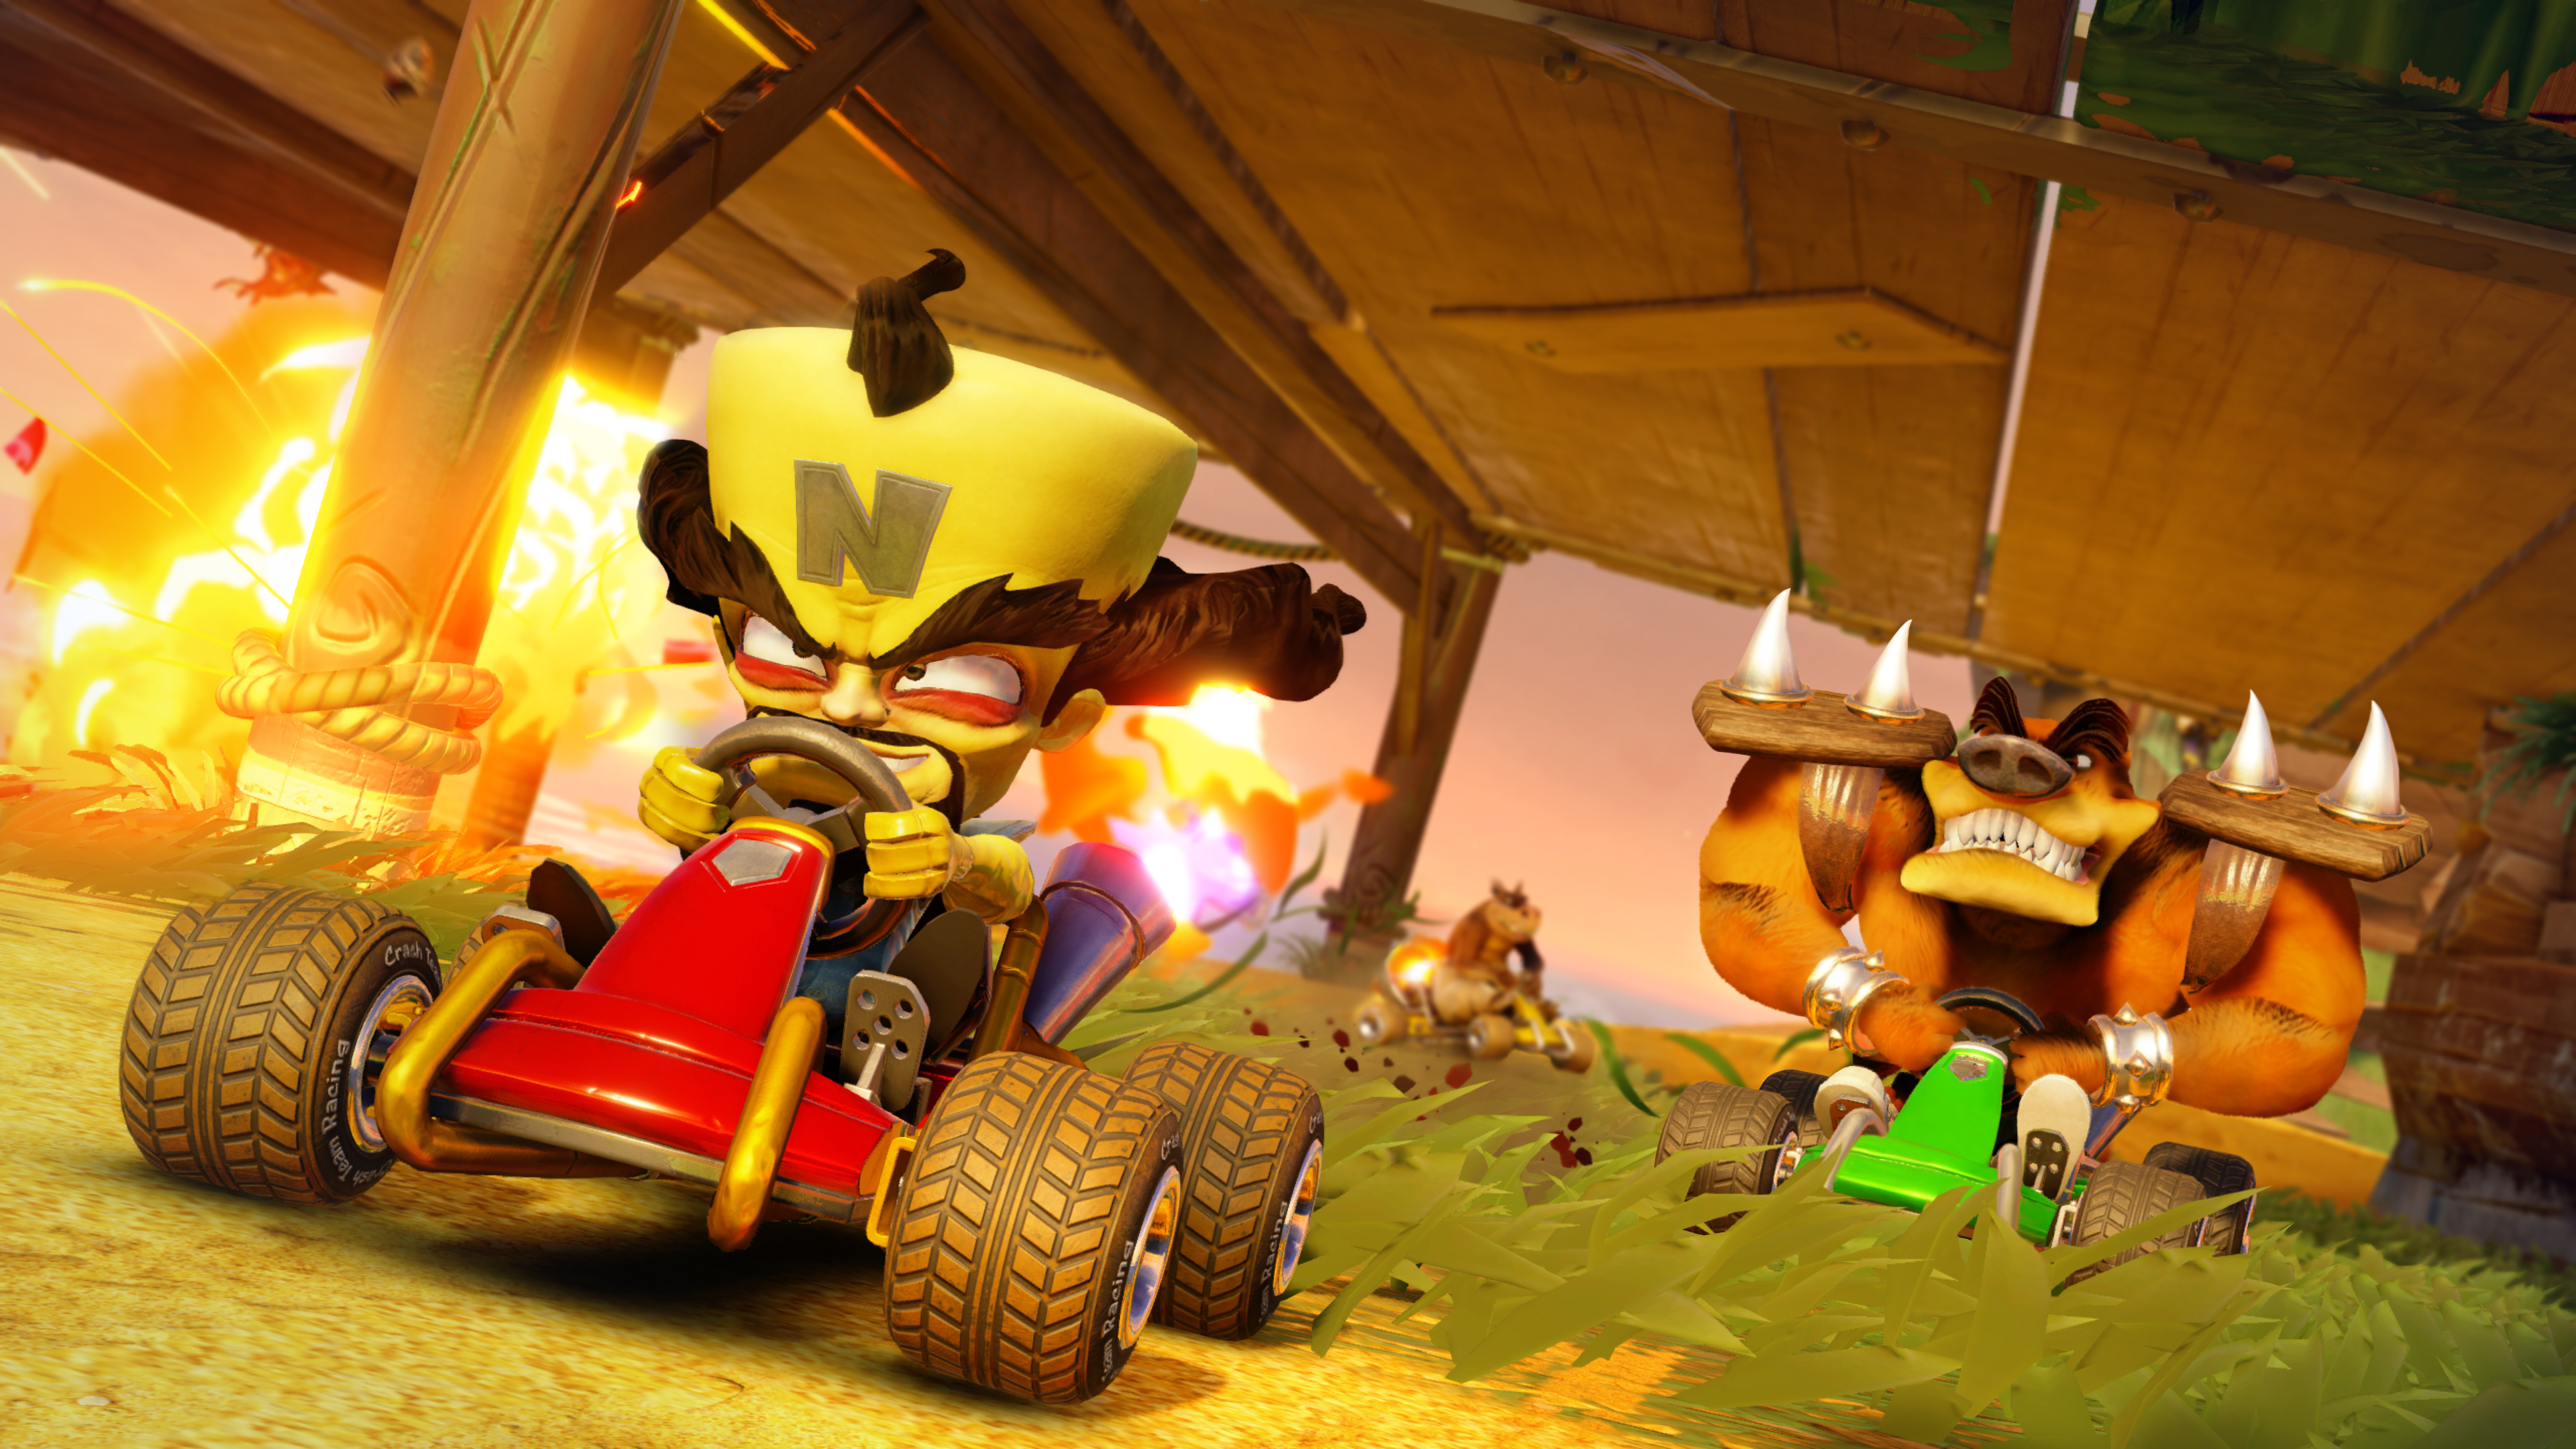 Crash Team Racing shortcuts: All the hidden paths in Nitro-Fueled to